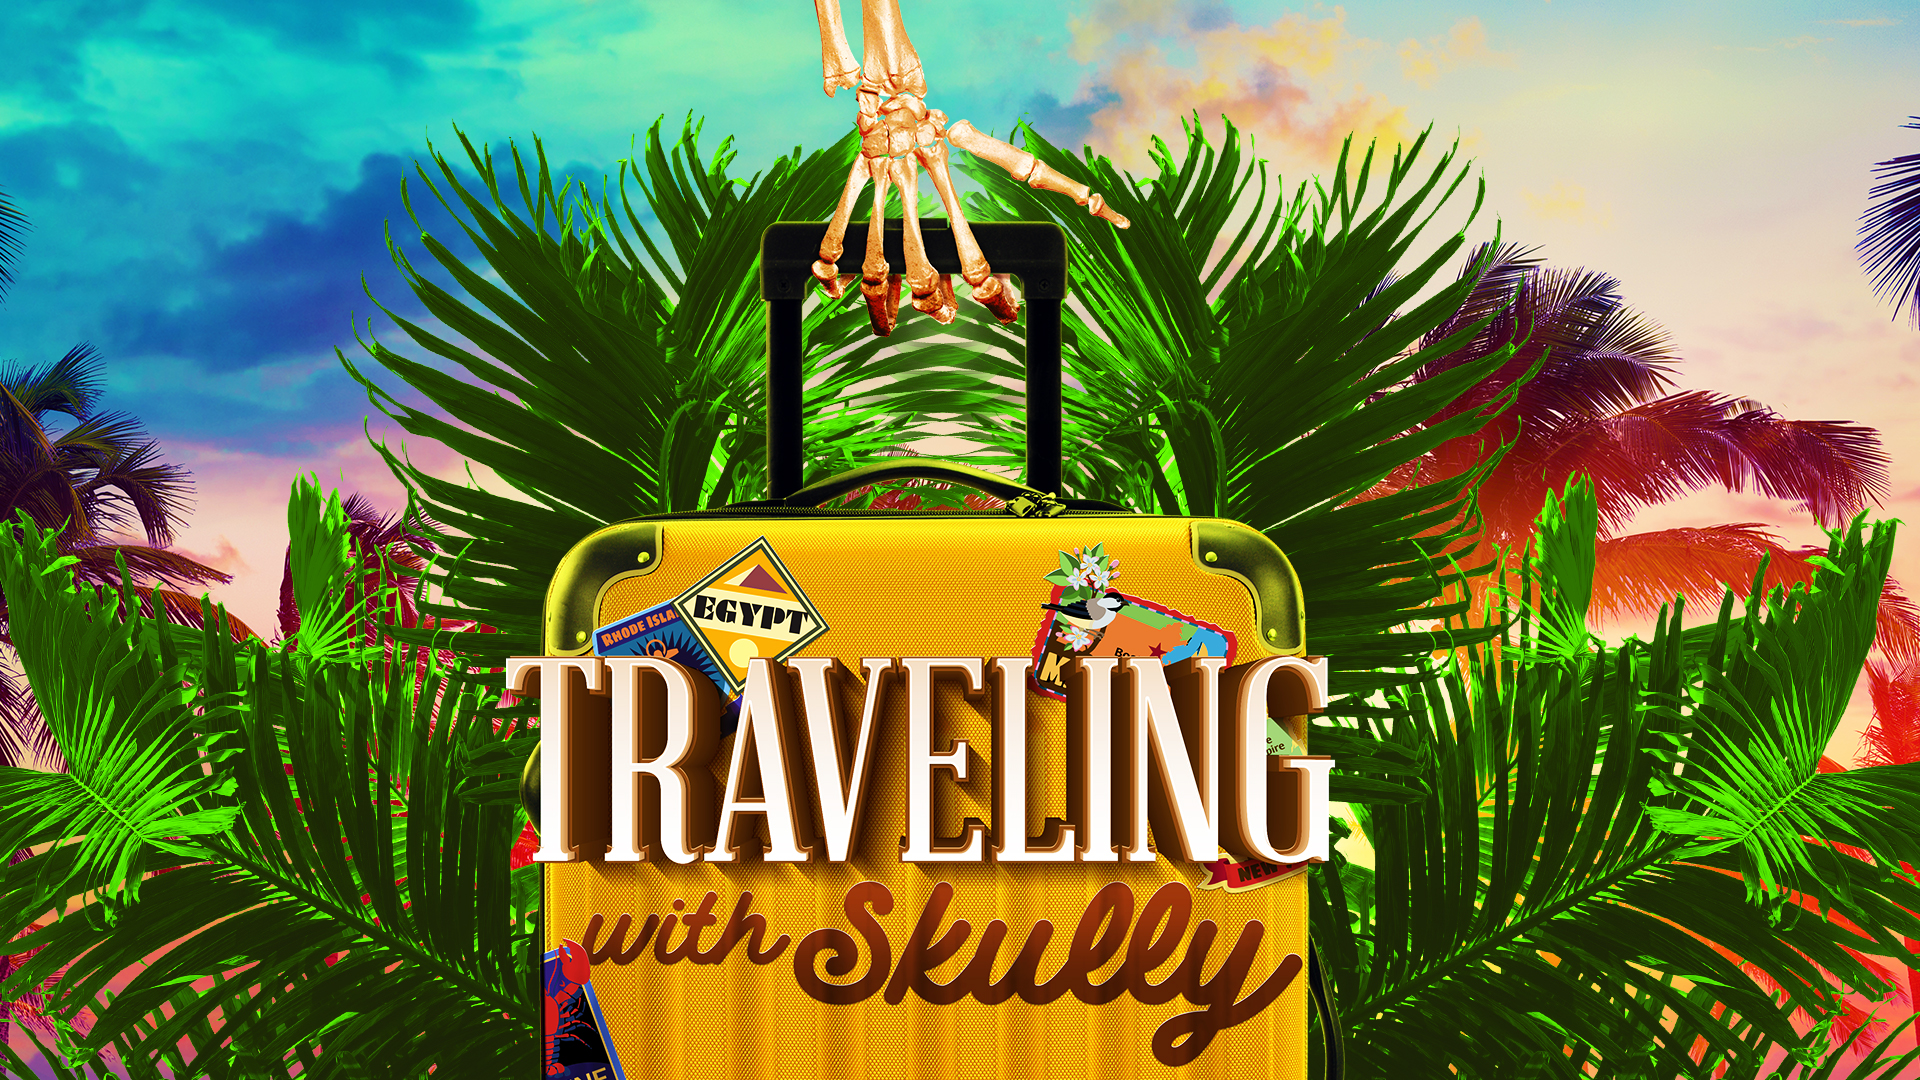 Traveling with Skully